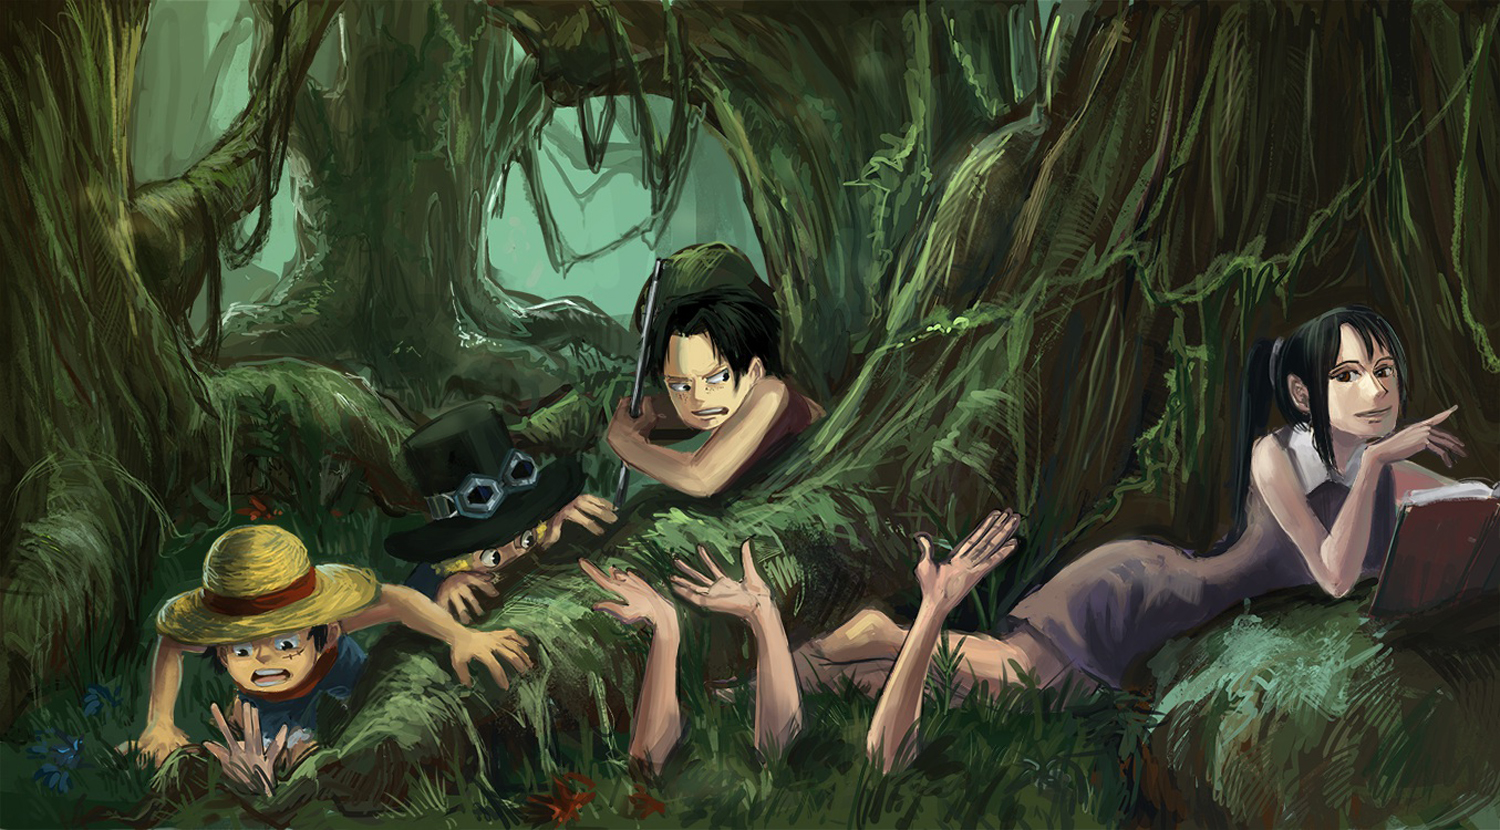 One Piece Luffy Sabo Ace Nico Robin Anime Multiple Arms Book Forest HD Wallpaper Desktop Background